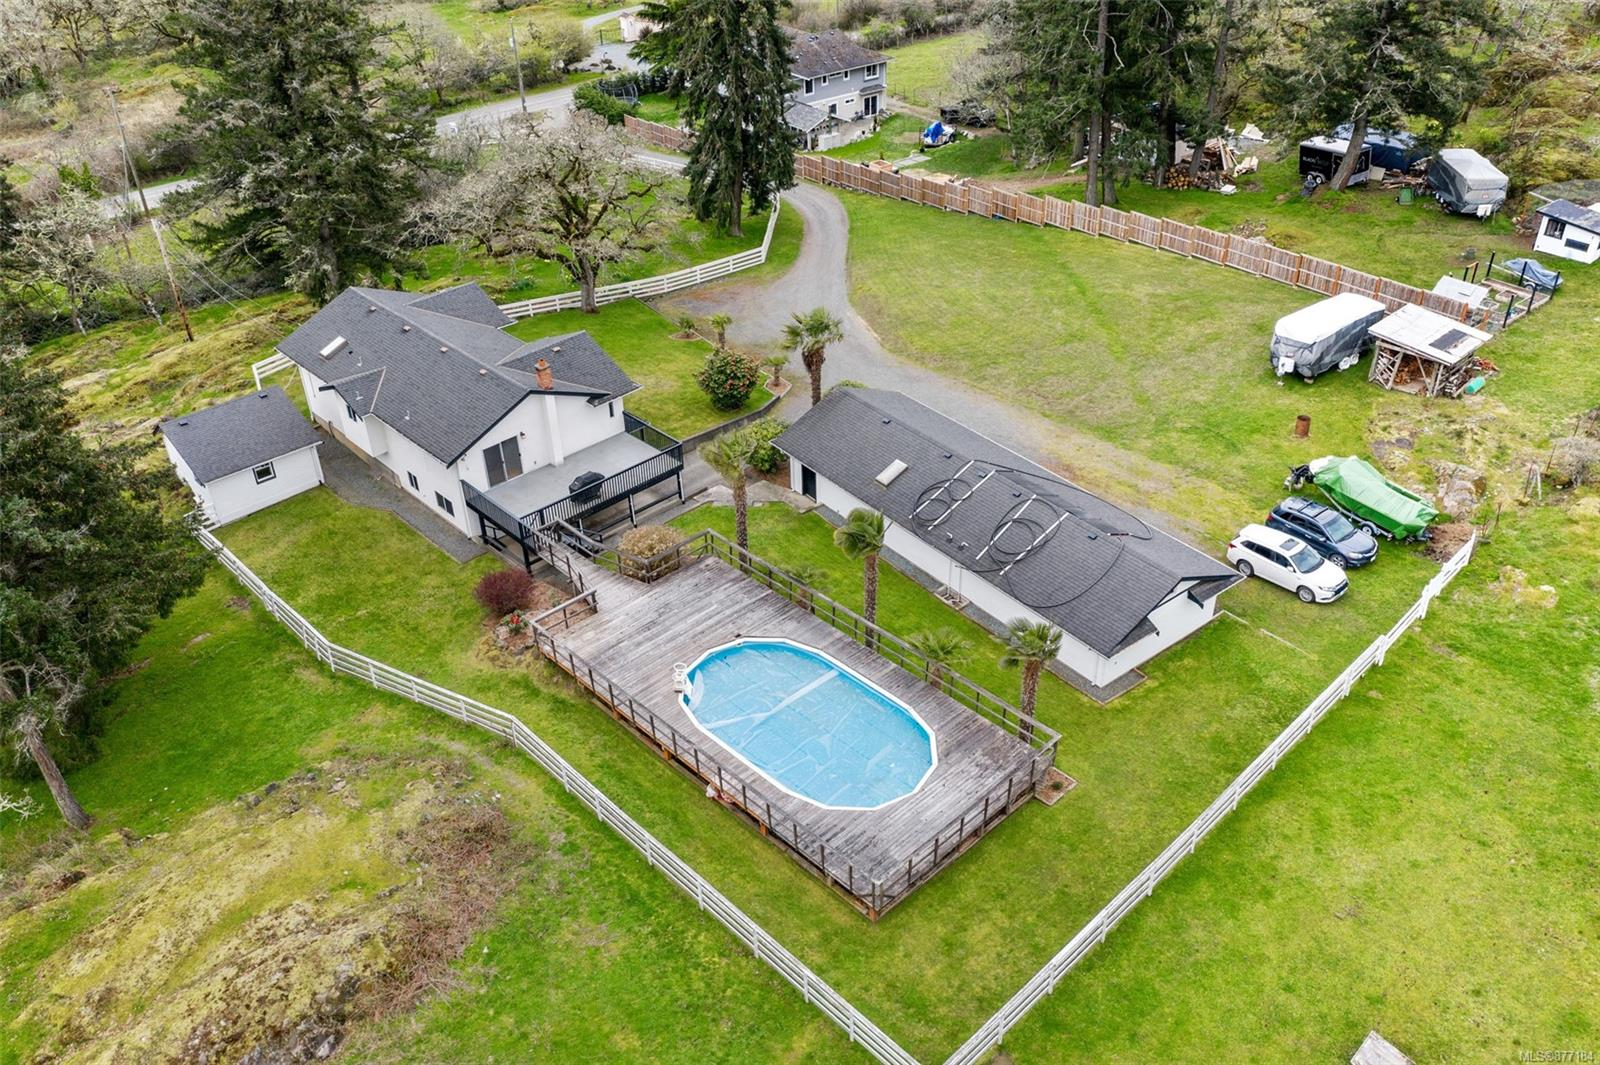 Rarely does the opportunity arise to own 6.98 acres of land this close to the city and all amenities. Welcome to 1916 Burnside Rd West, a sprawling estate like property proudly offered for the first time in over 65 years. Lovingly maintained house with 3 bedrooms and 1 bathroom upstairs, complete with rec room, additional bedroom and bathroom below. The massive 400 square foot west facing sundeck leads out to your very own swimming pool that captures all day sun. Beyond the pool you have the perfect view of the expansive field leading up to a unique Garry oak meadow that backs onto the world class Highland Pacific golf course. Bonus detached 1-bedroom farmhouse studio space and an incredible 750 square foot detached workshop currently set up for a wood worker. This one-of-a-kind offering is now available at a reduced price representing incredible value in today's real estate market. Book your private showing today.